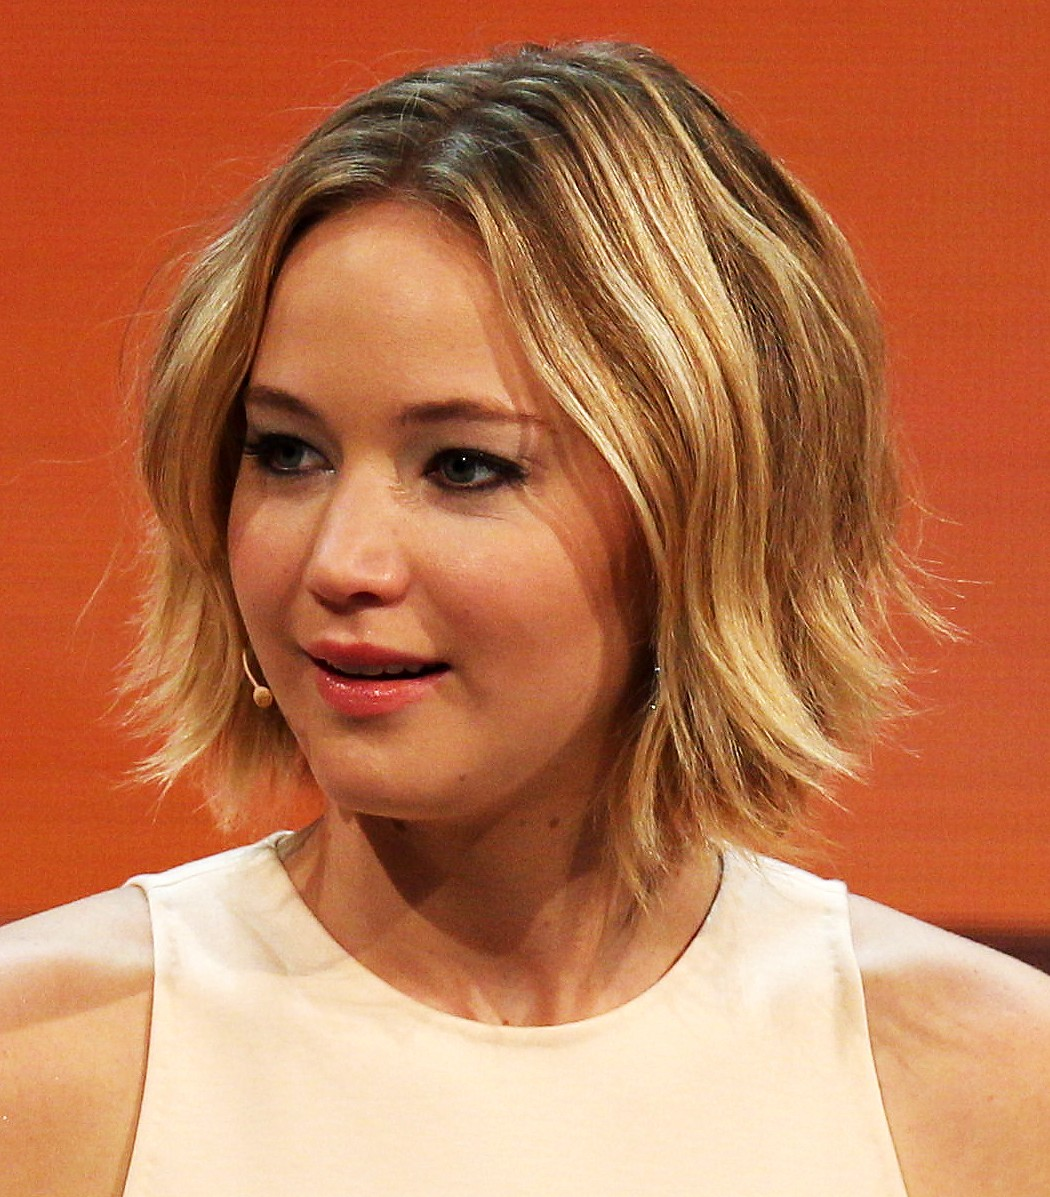 Great Hairstyles : Jennifer Lawrence looks great with short hair!